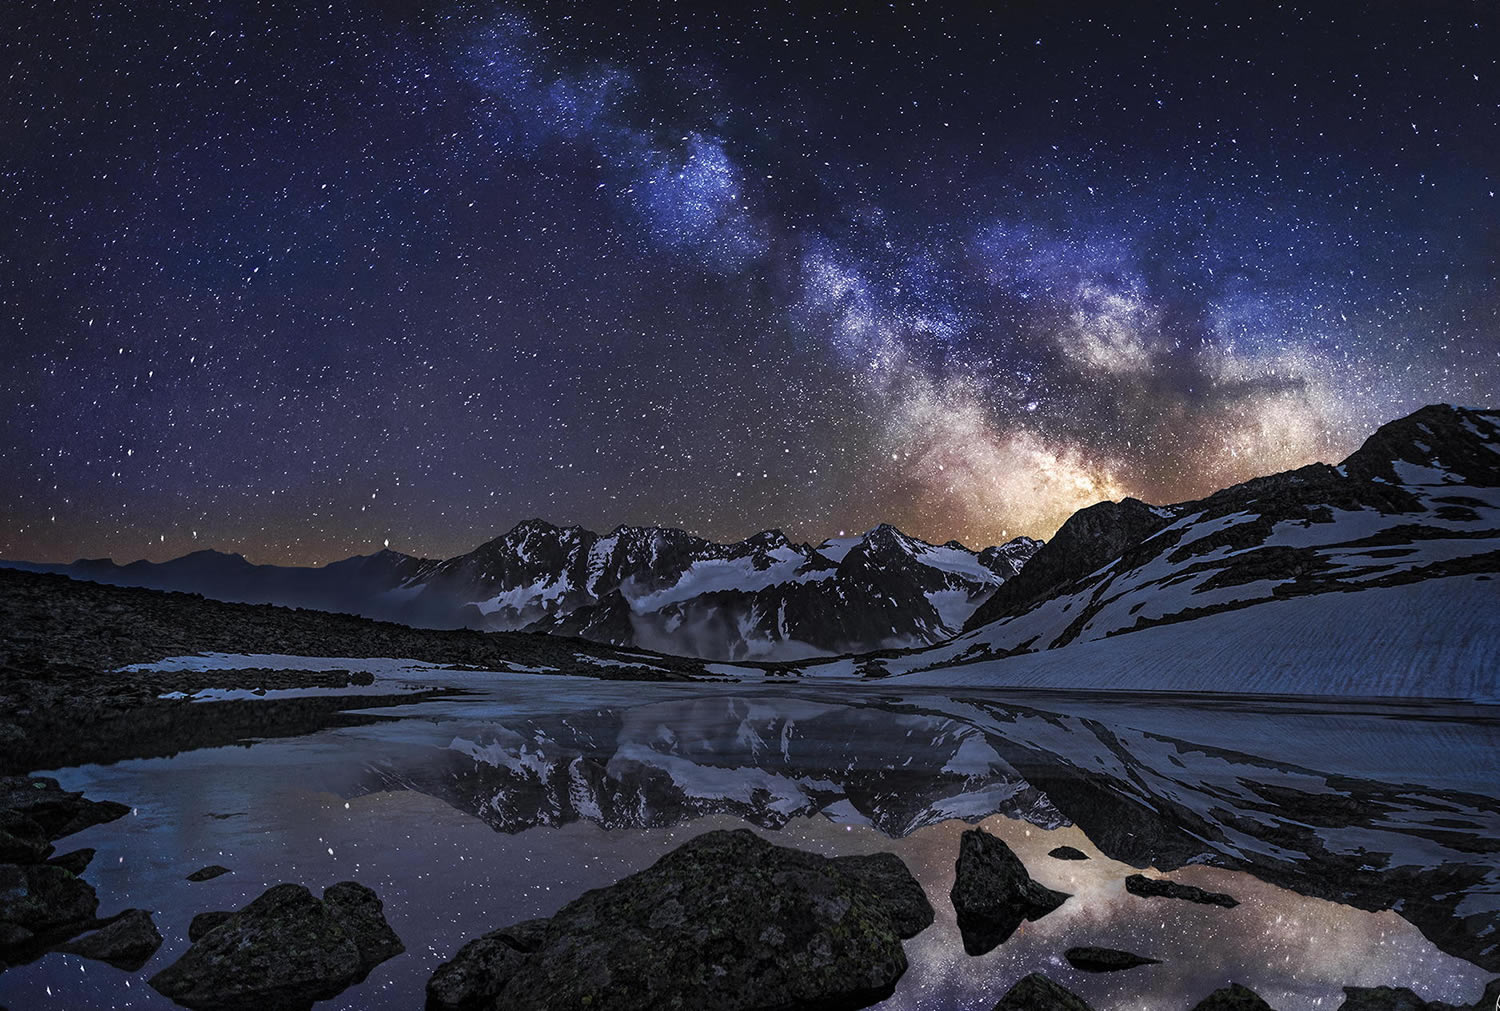 reflection photo of snowy mountains and milky way, by nicholas reommelt